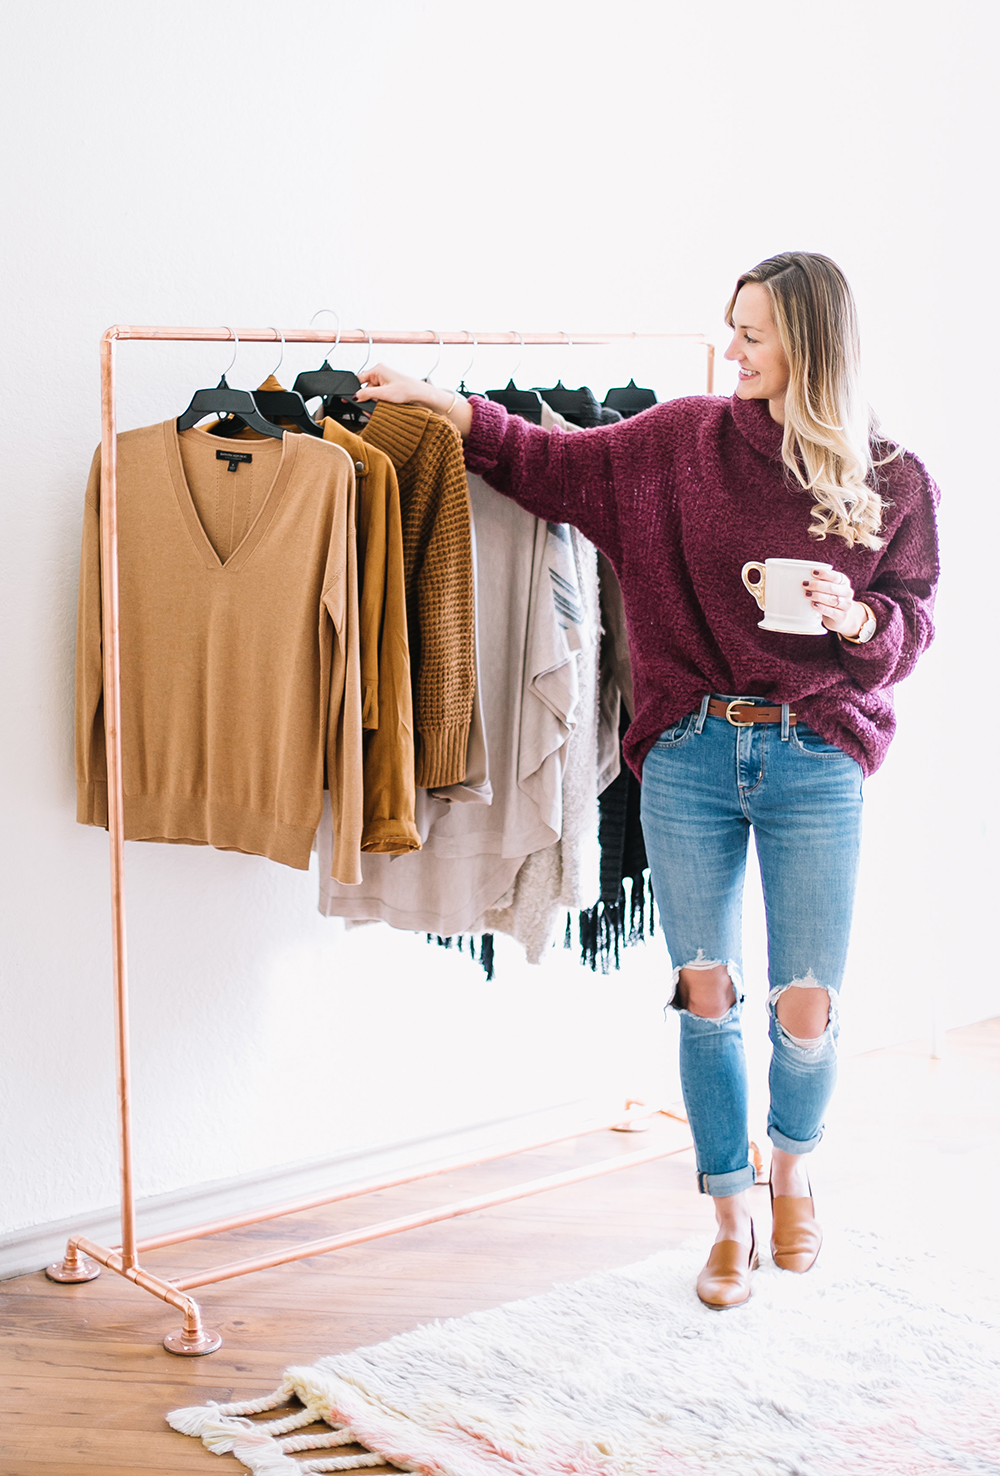 Unique Home Decor Finds